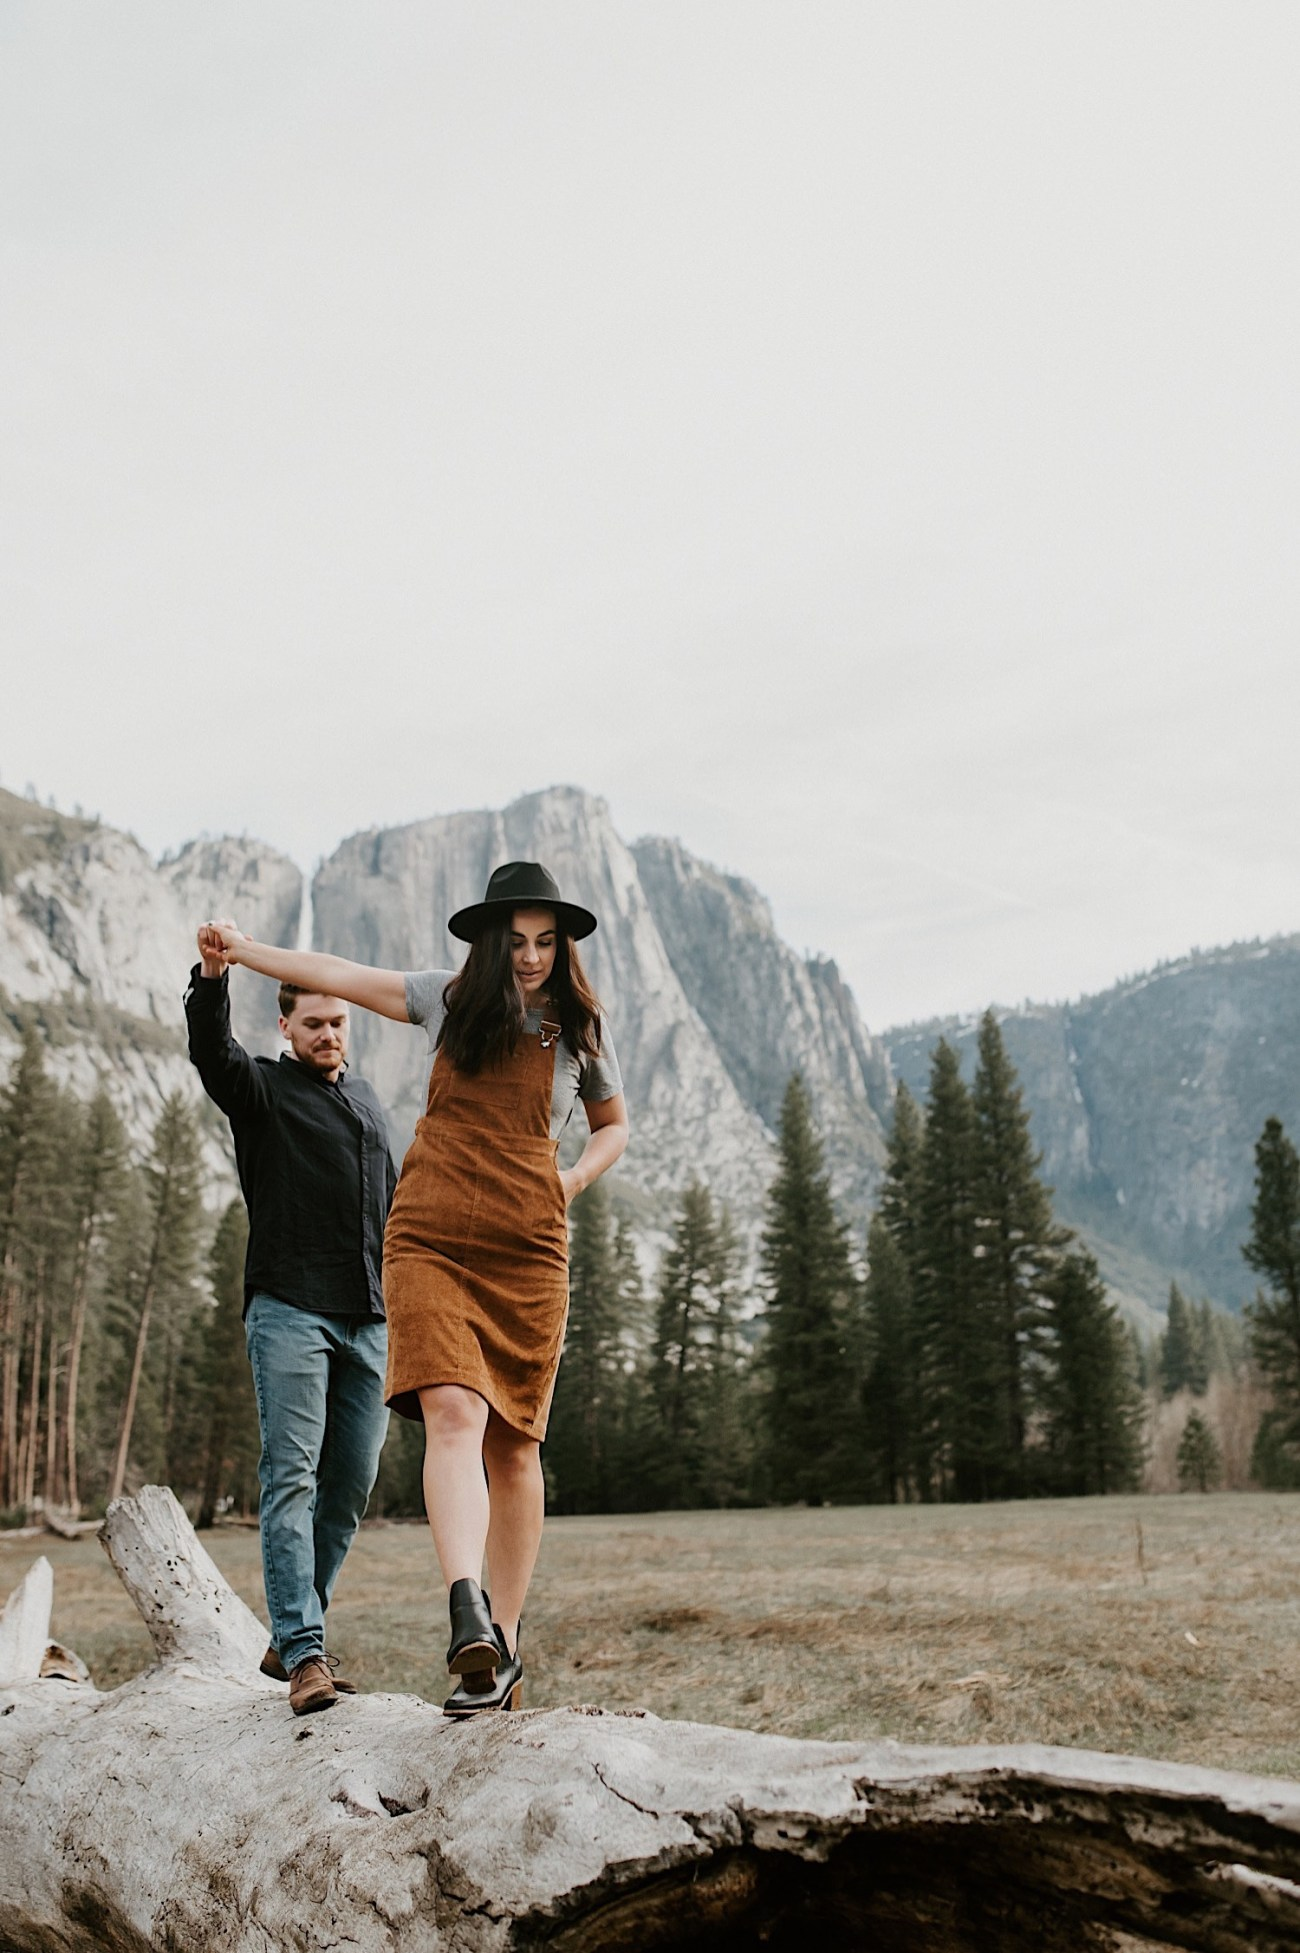 Yosemite Anniversary California Wedding Photographer San Francisco Wedding Photographer Yosemite Elopement 14